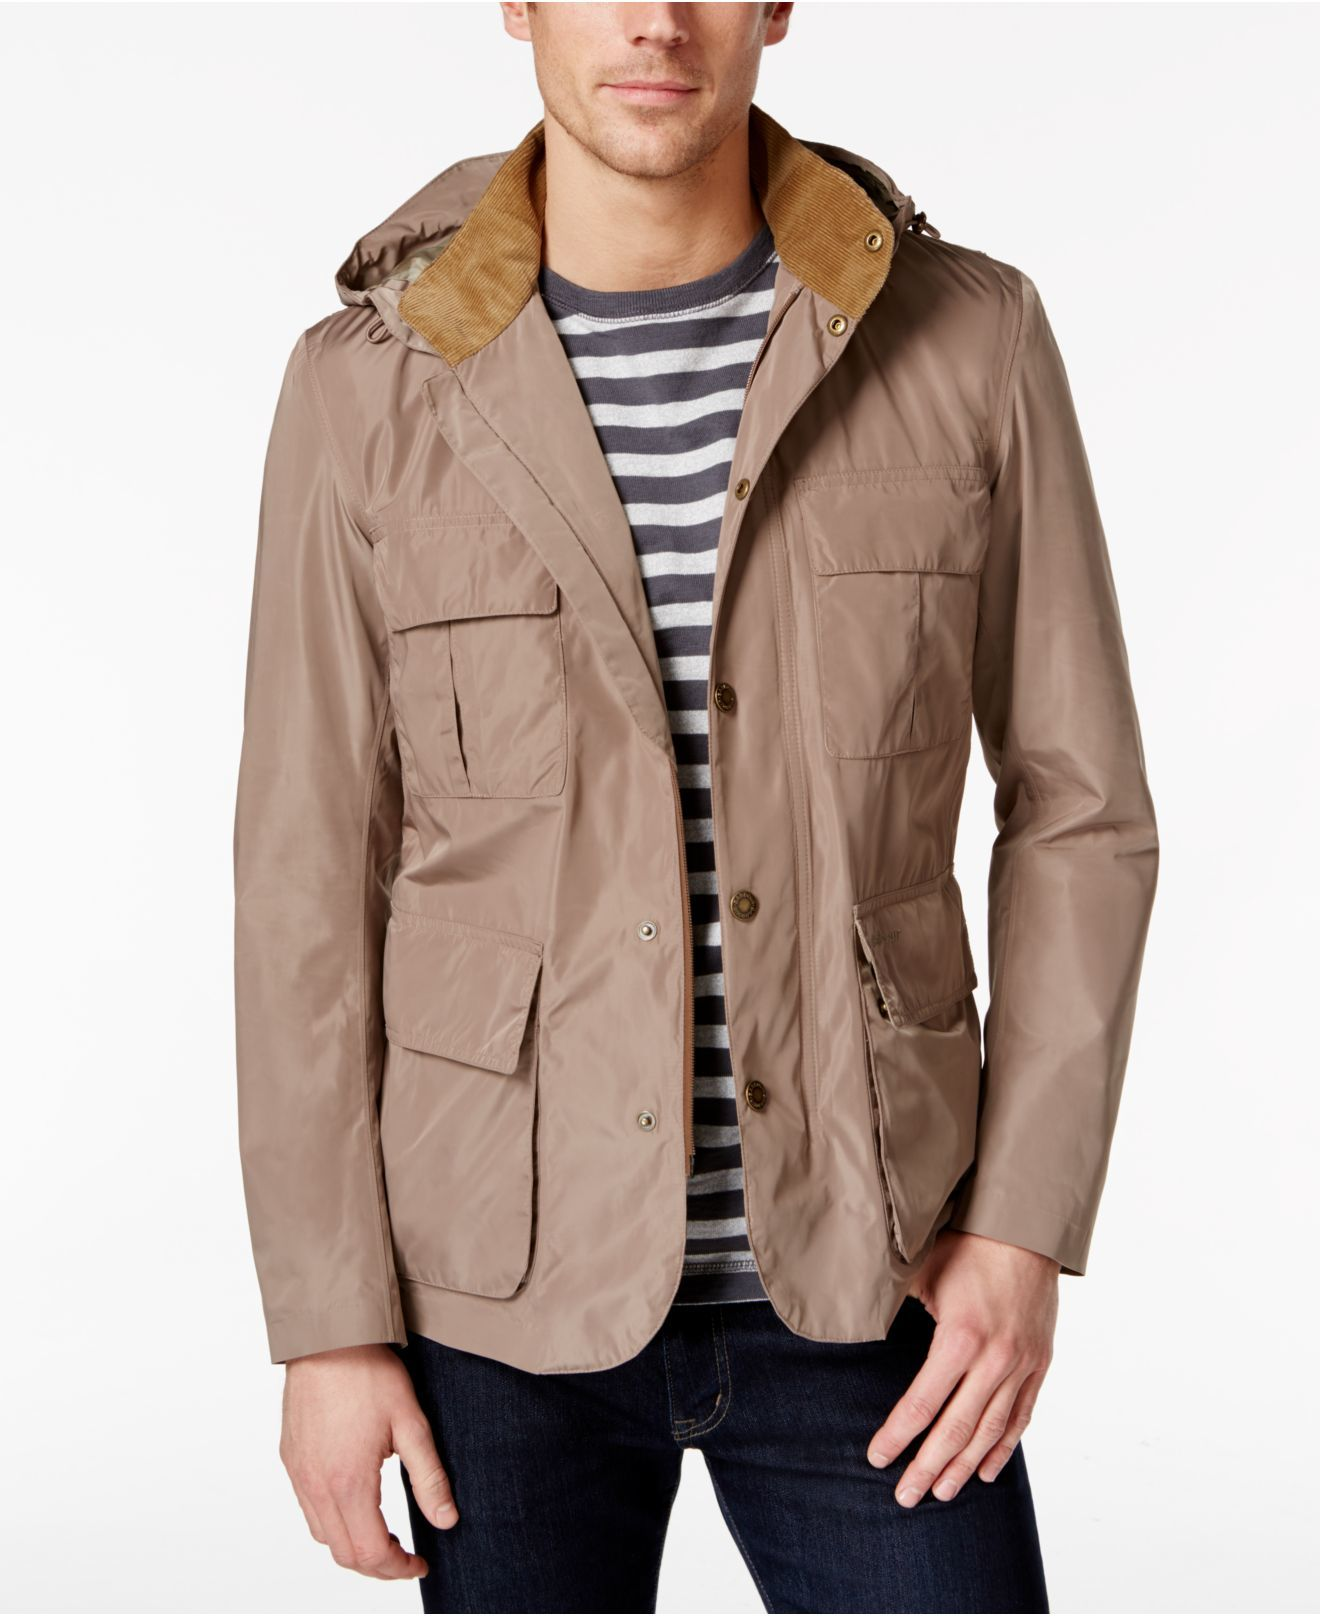 ba836741c024 Barbour Men's Thurso Detachable-hood Jacket in Brown for Men (Military  Stone) - Save 67%   Lyst